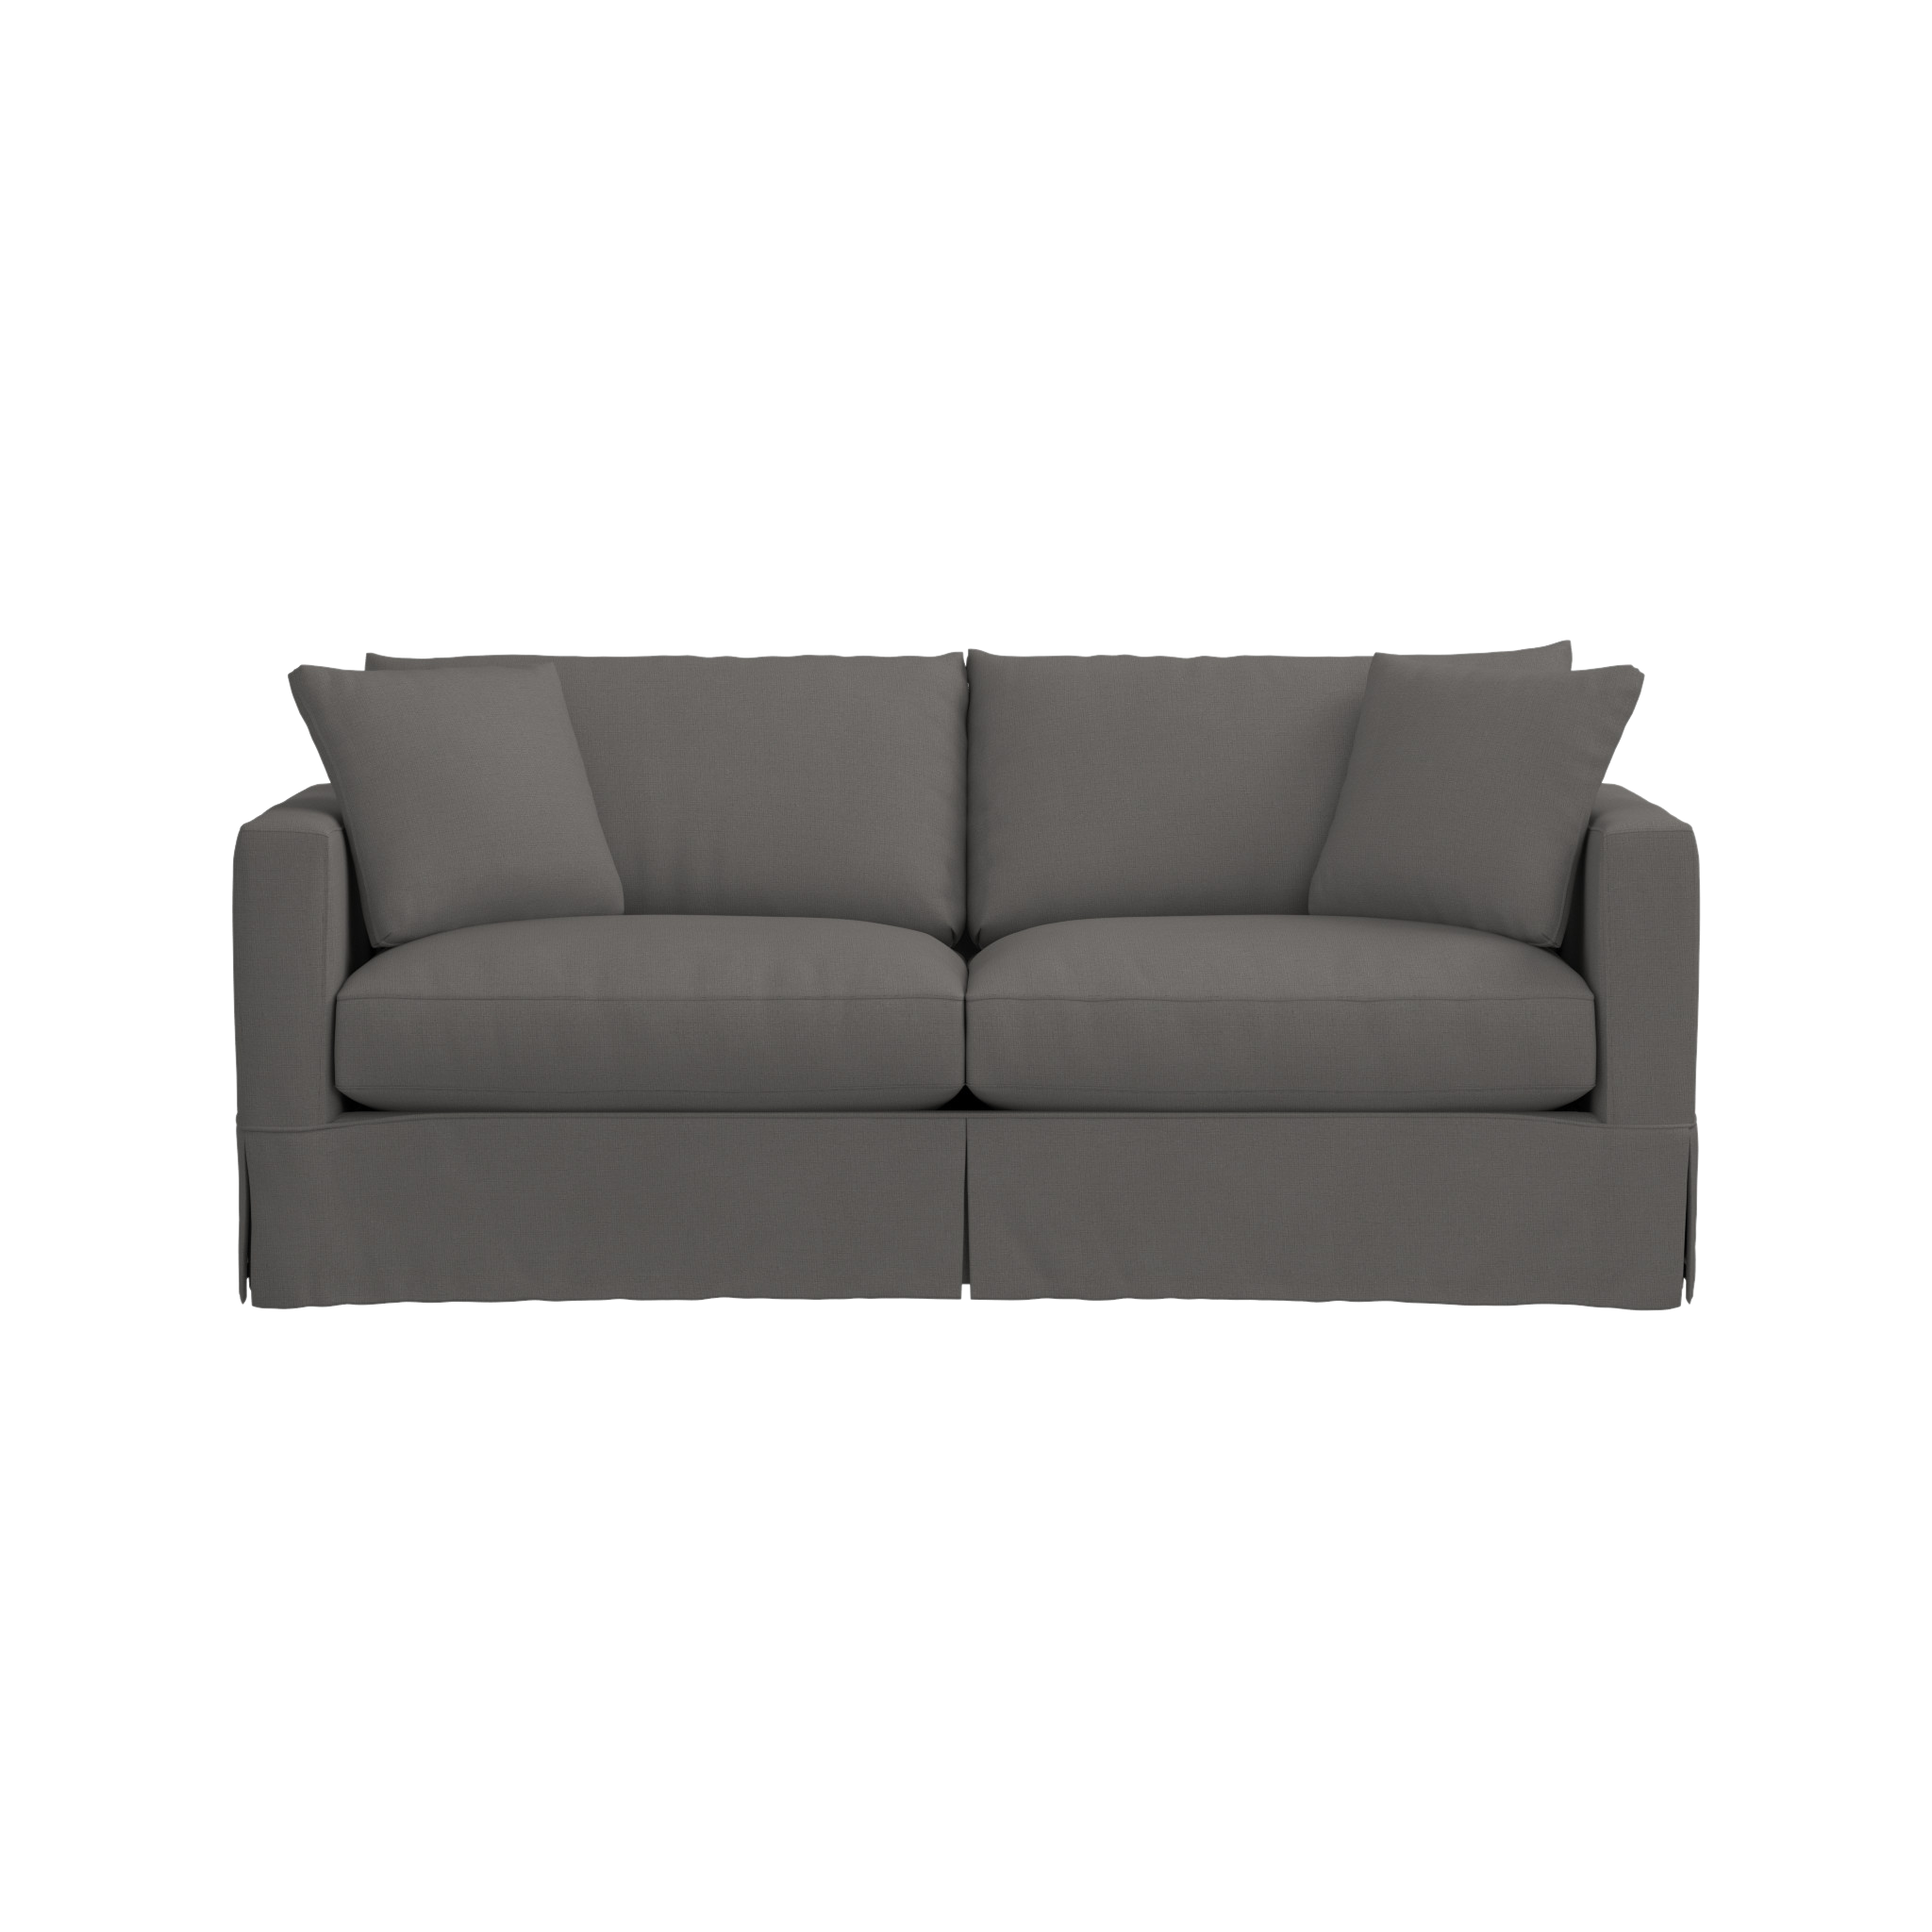 Keely Slipcovered Sofa Reviews Crate And Barrel Slipcovered Sofa Furniture Sofa Furniture